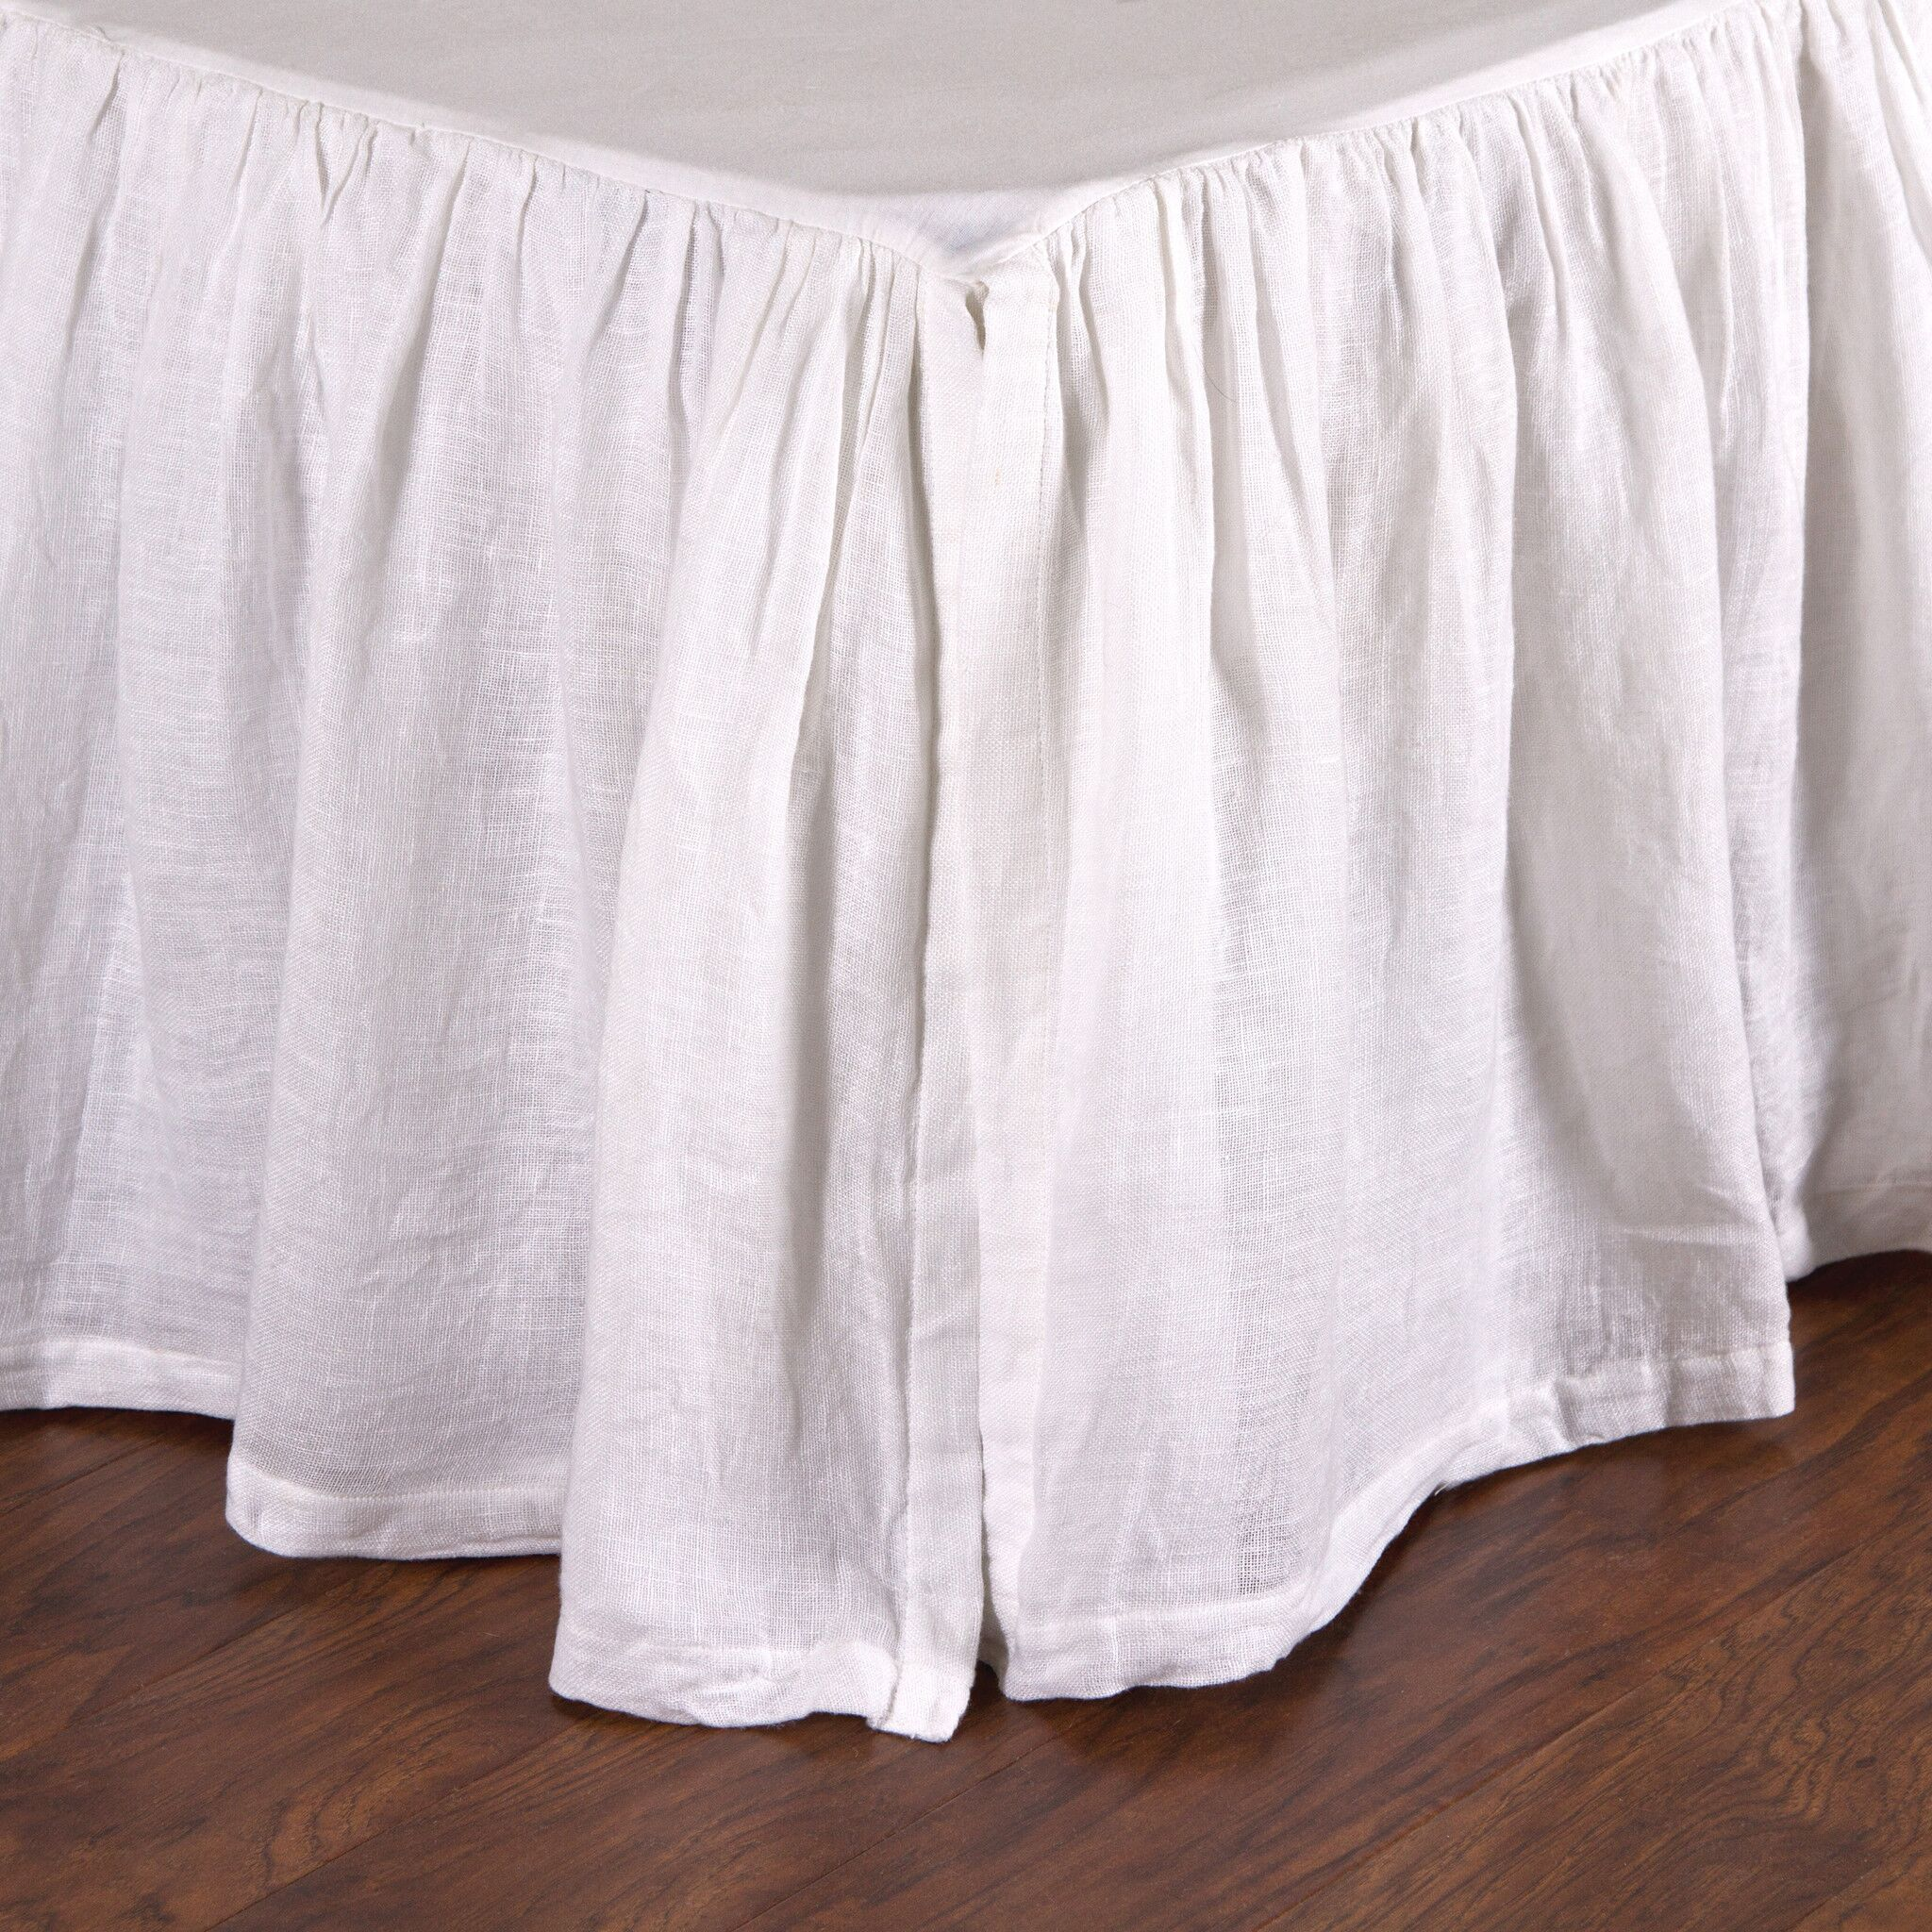 Linen Voile Bed Skirt Size: Twin, Color: White